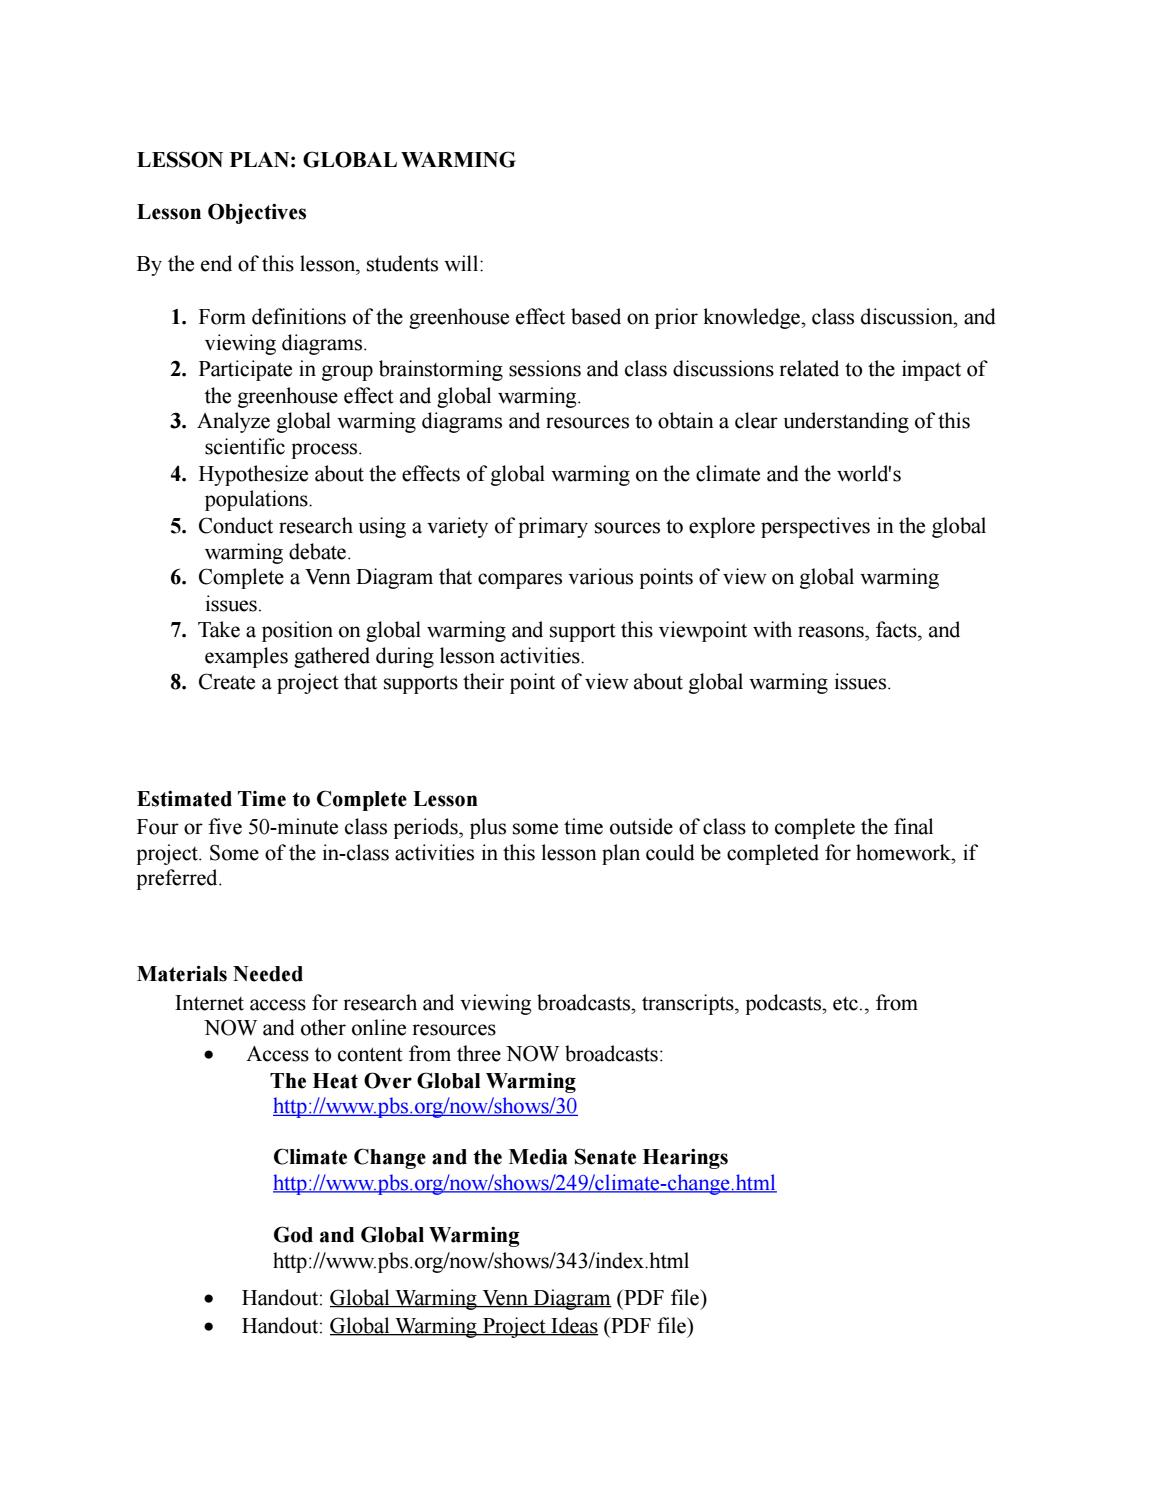 worksheet Global Warming The Signs And The Science Worksheet global warming lesson plan by alexandros alexandridis issuu